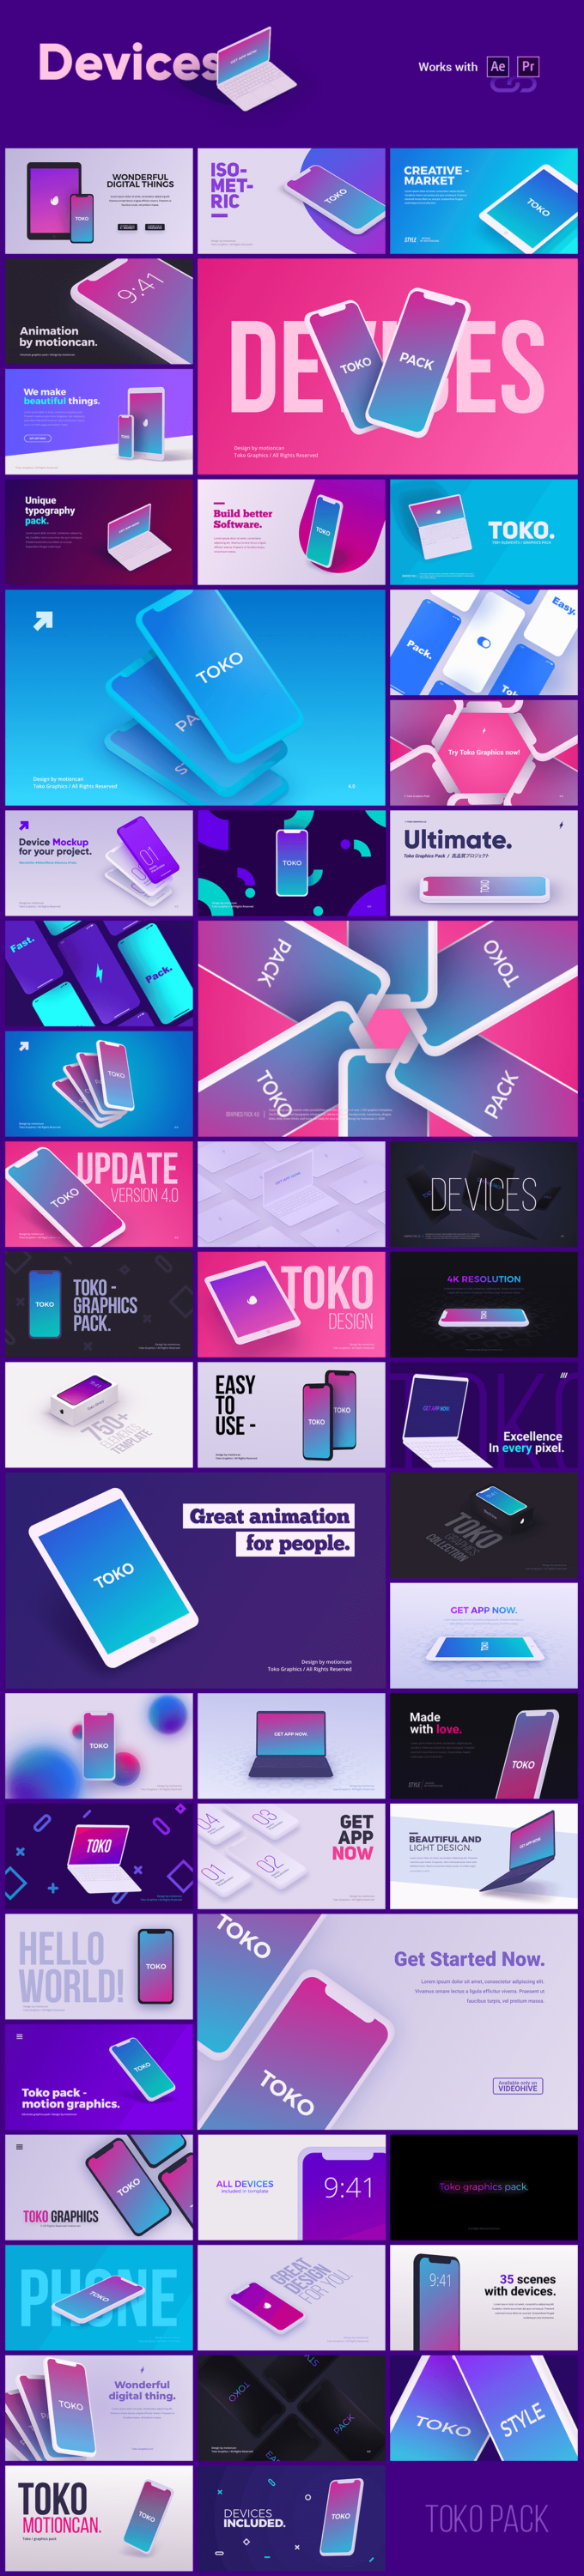 Adobe CC After Effects Toko Graphics 使い方 解説  プリセット Devices